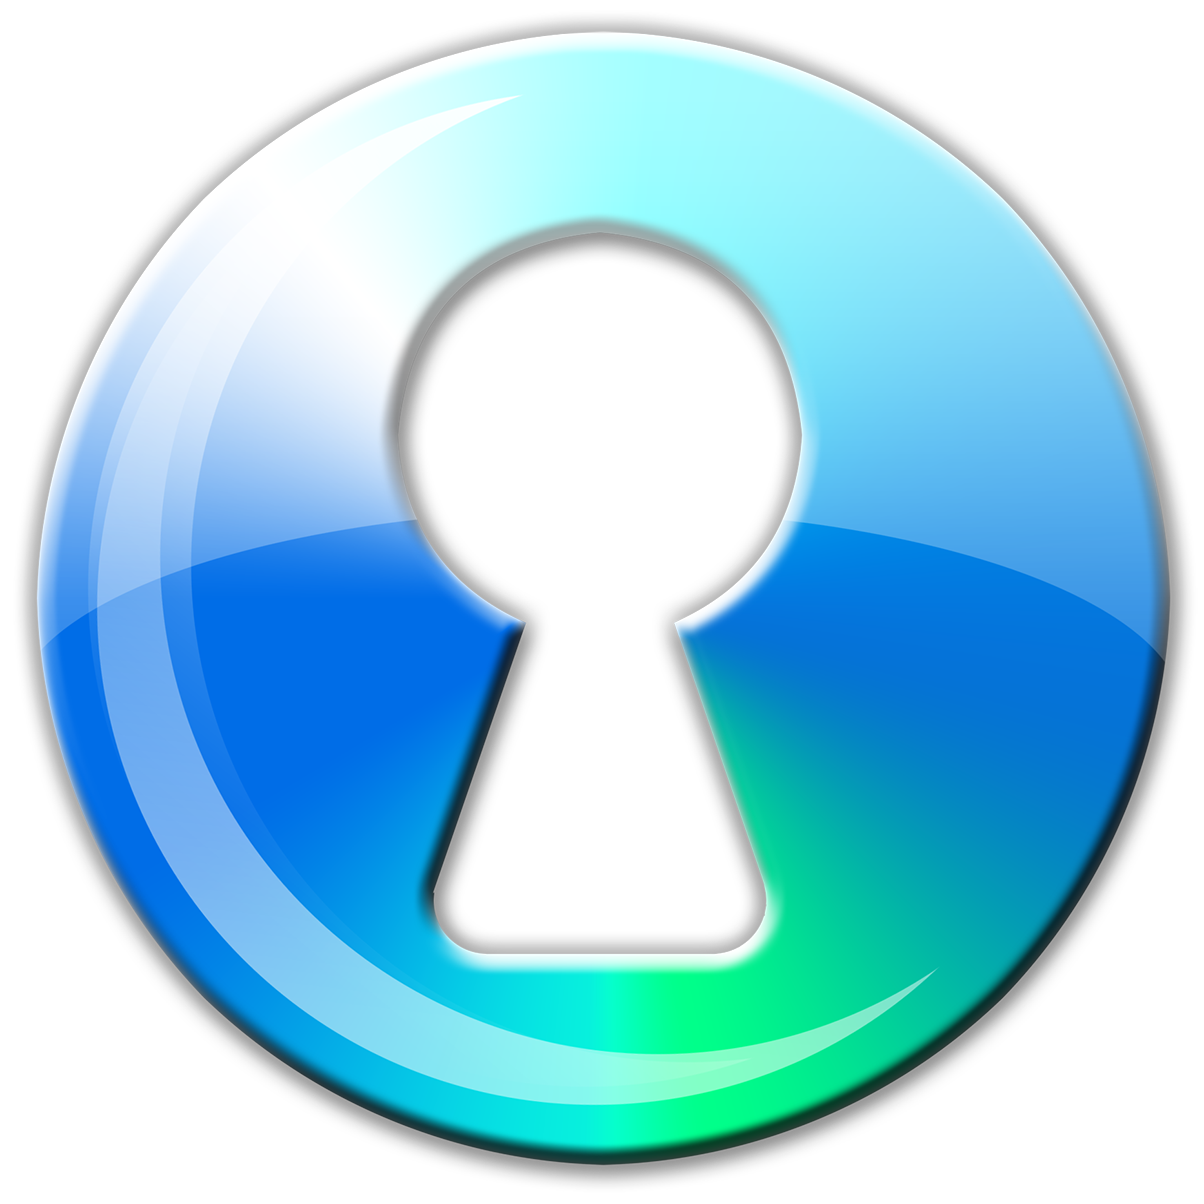 Finder Icon Png Freeware 1024x1024 png alpha: galleryhip.com/finder-icon-png.html